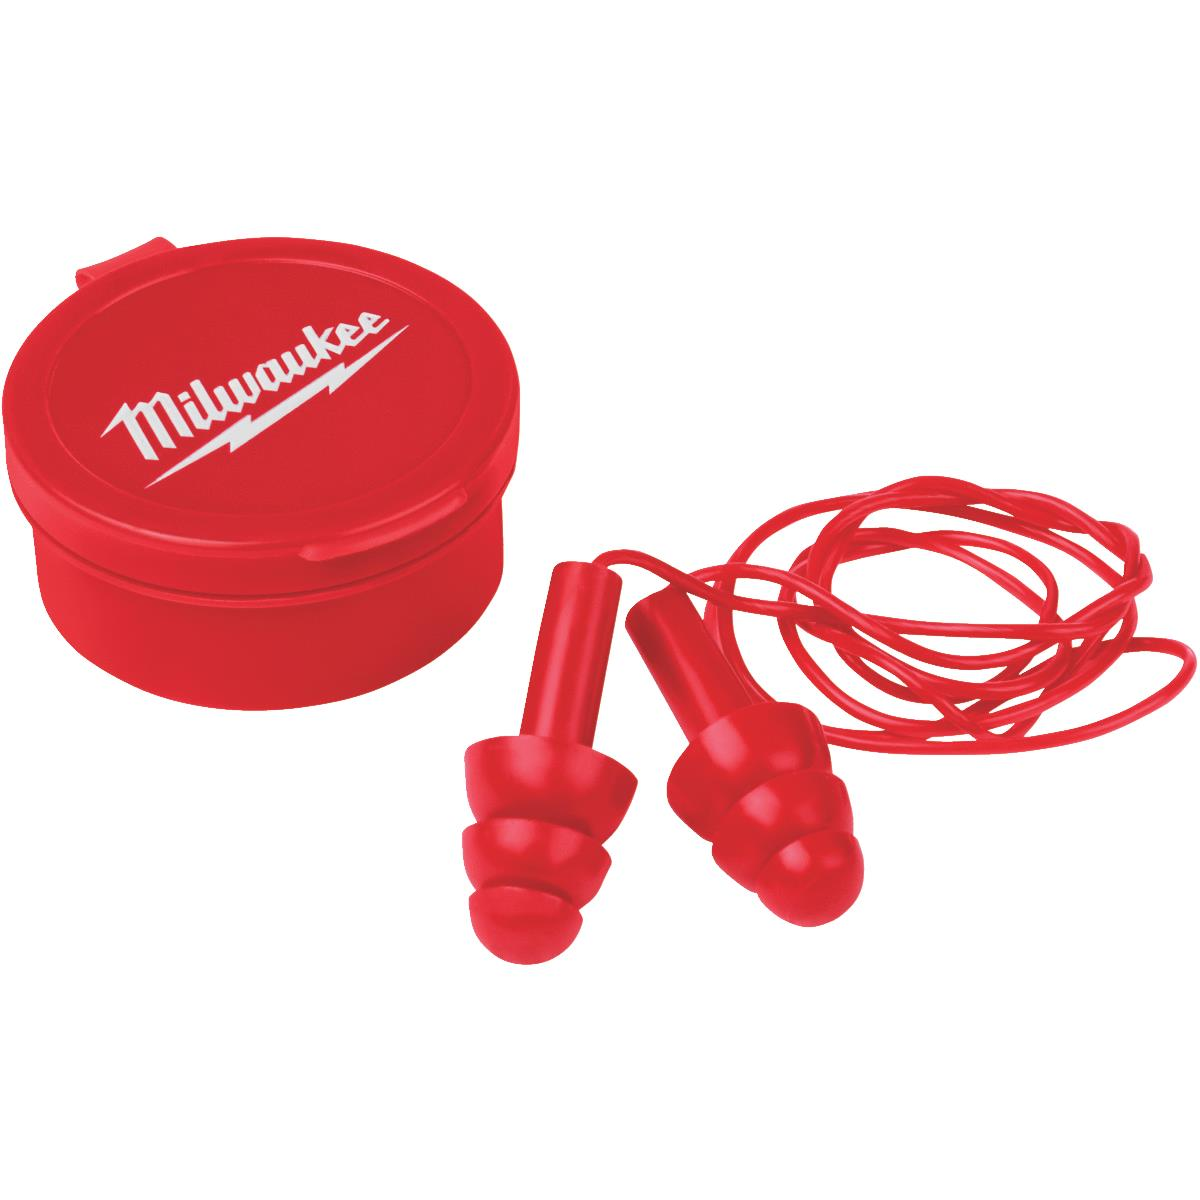 Milwaukee Silicone Ear Plugs